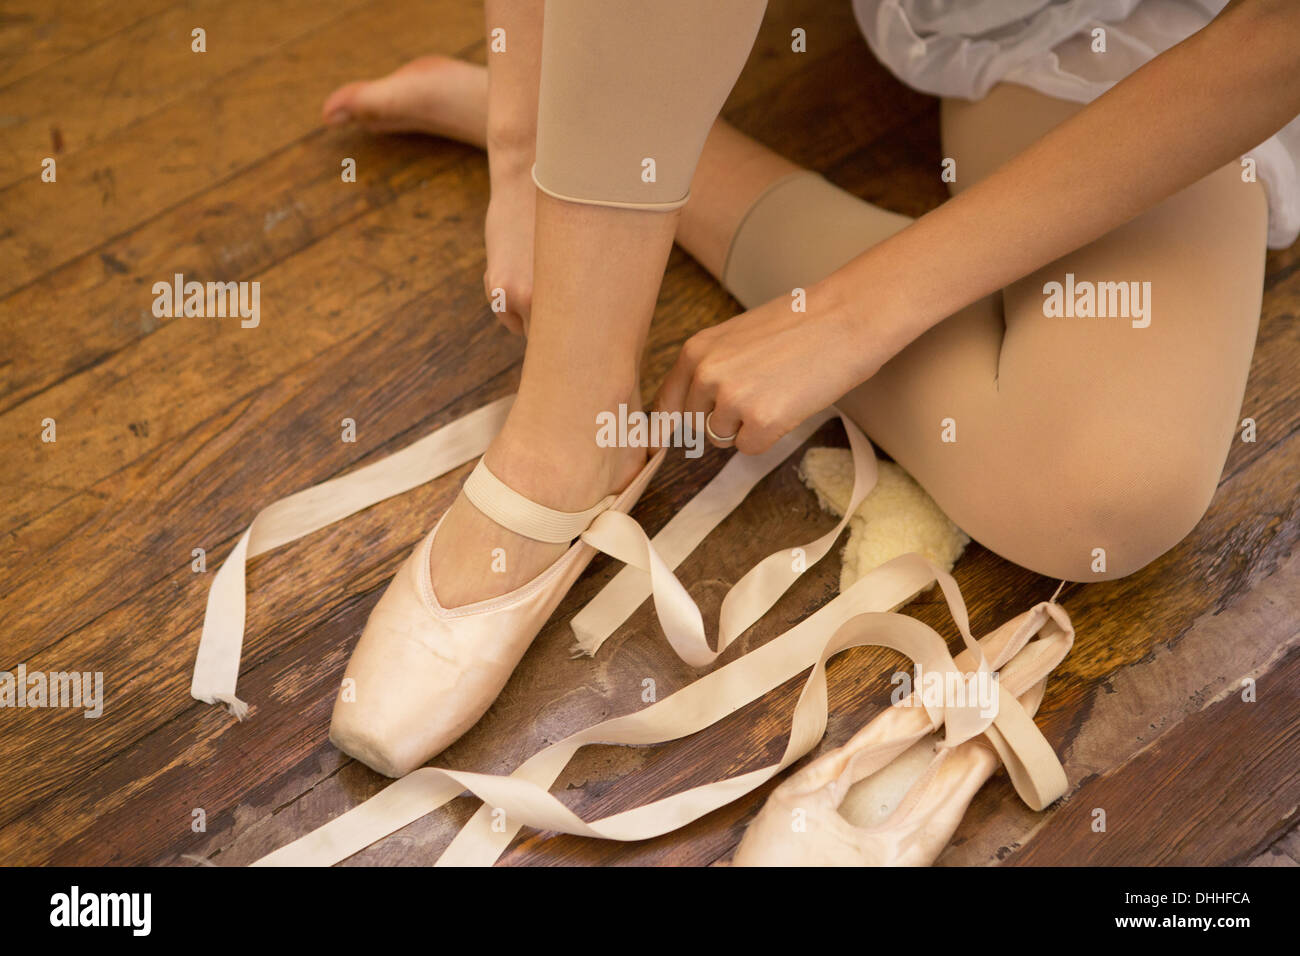 Ballet dancer tying shoe - Stock Image